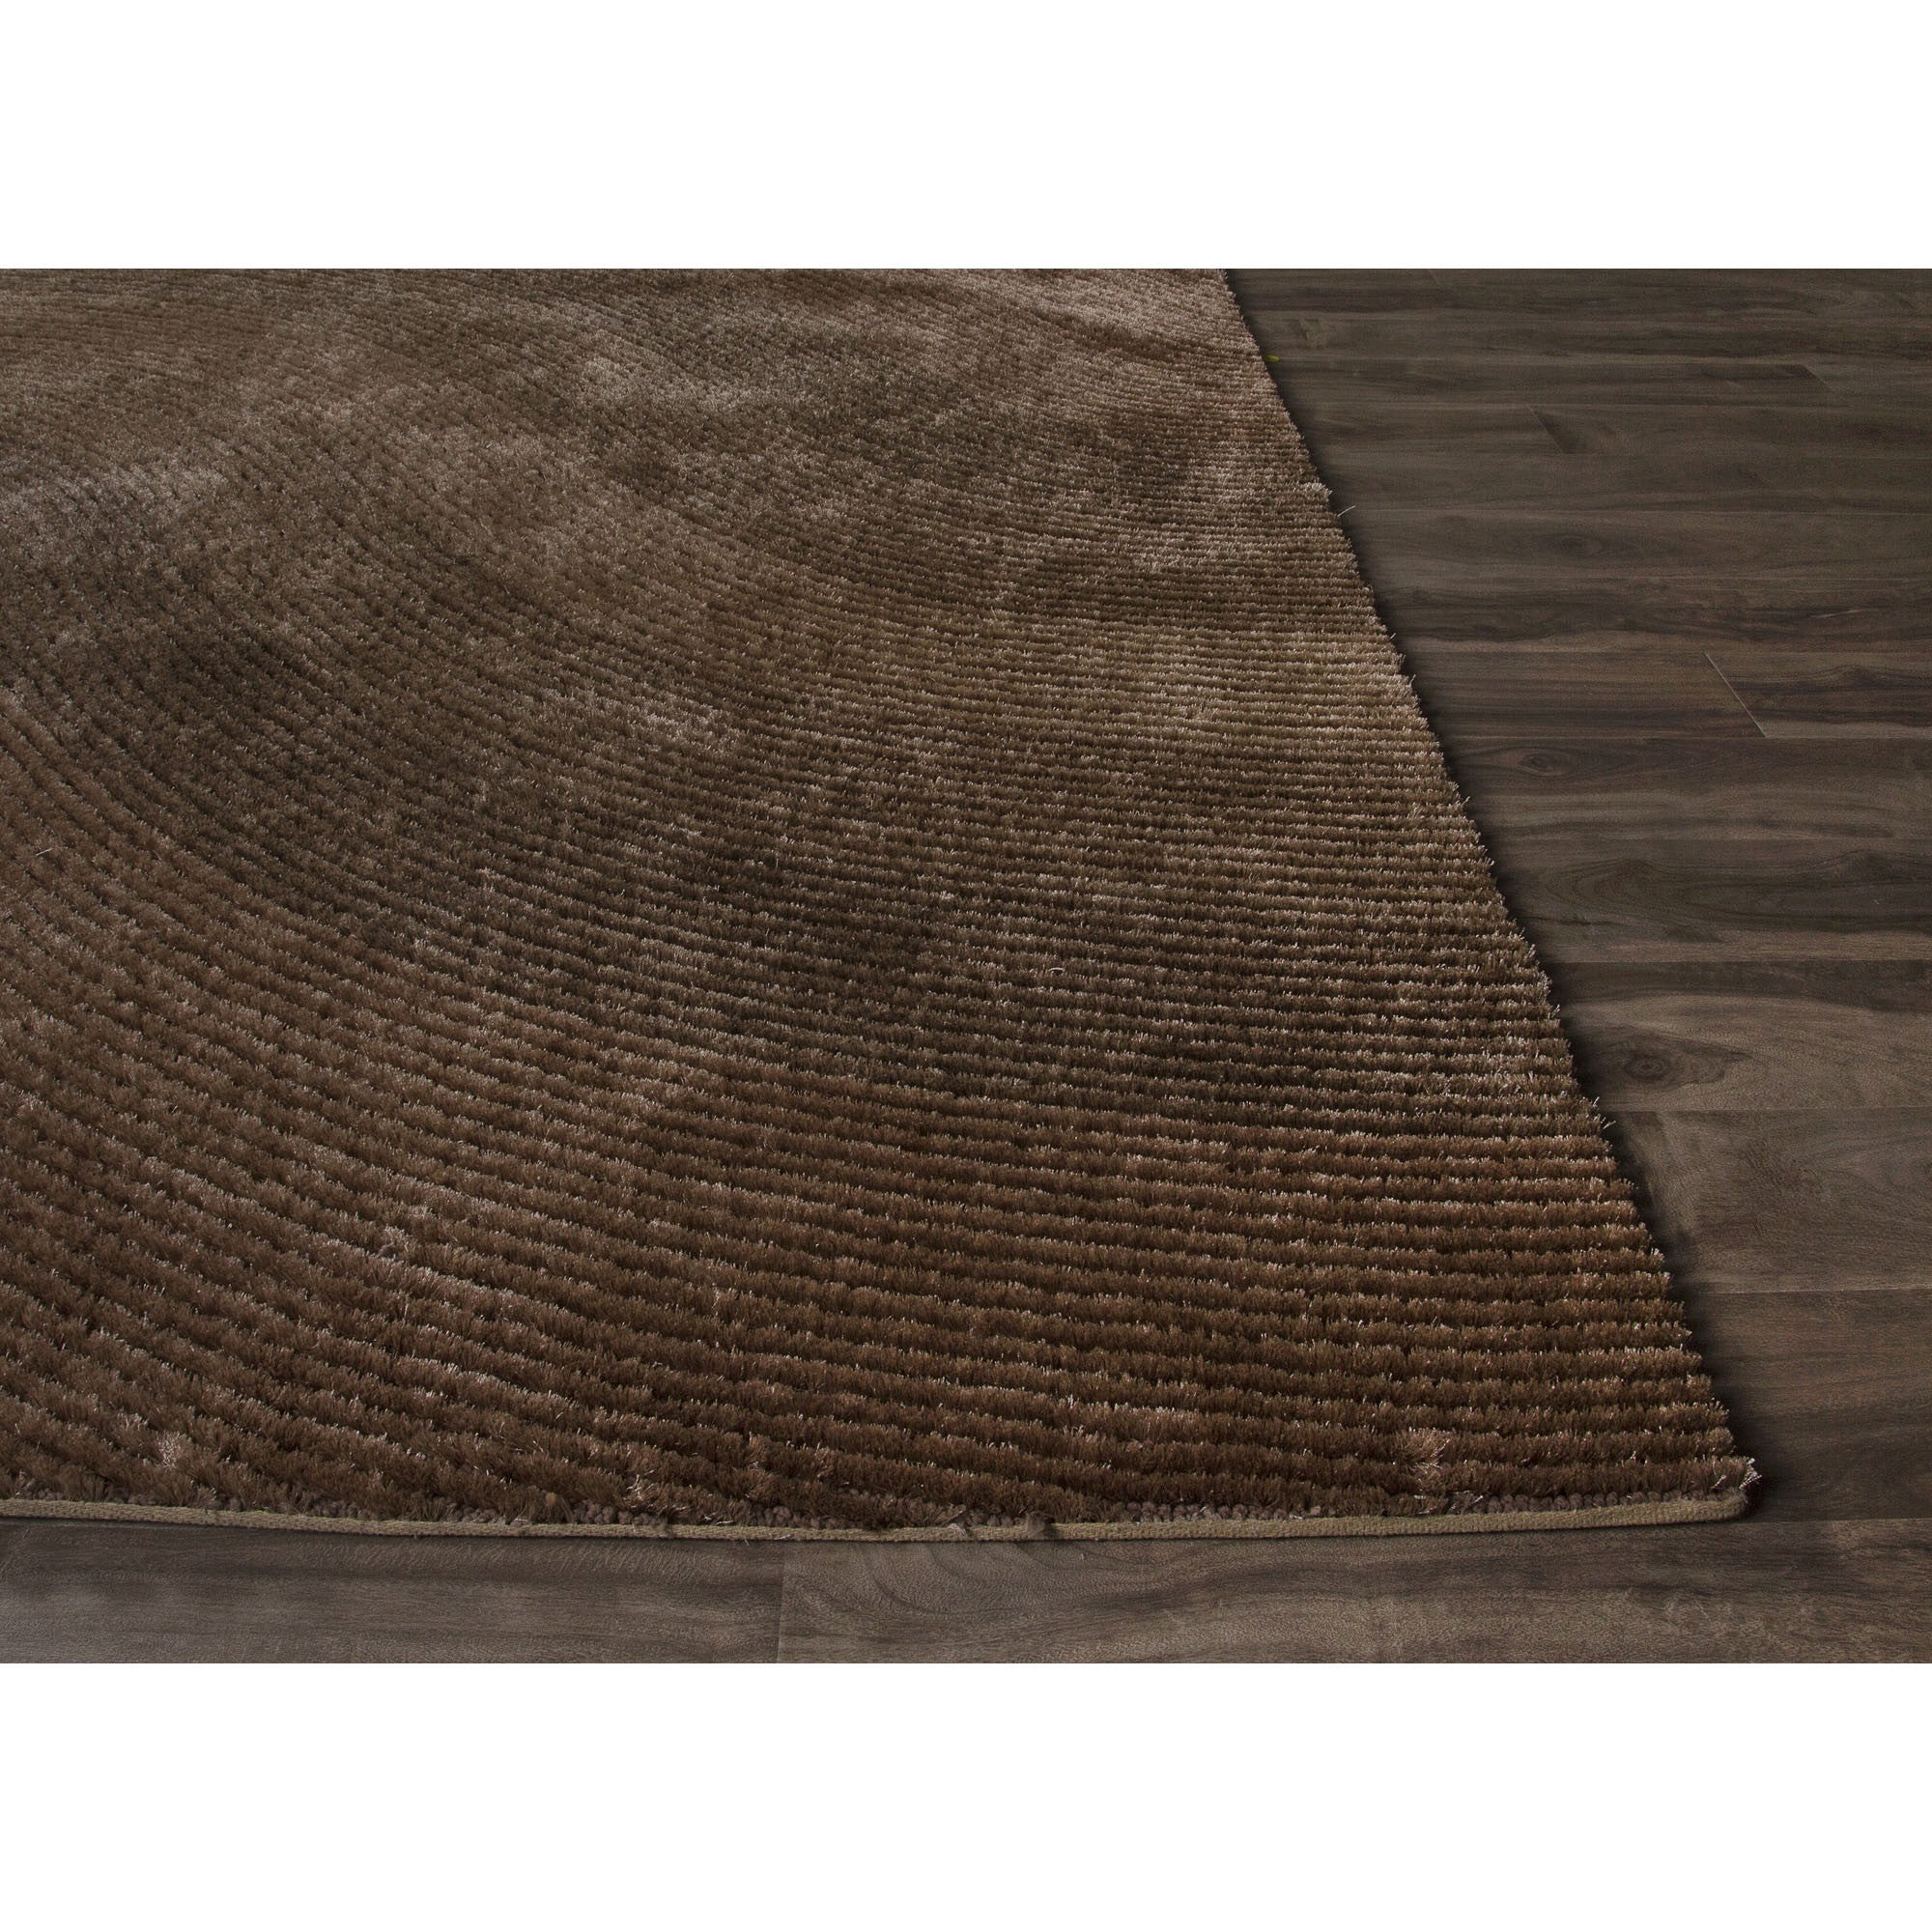 Jaipur Rugs Shags Solid Pattern Brown Taupe Polyester Area